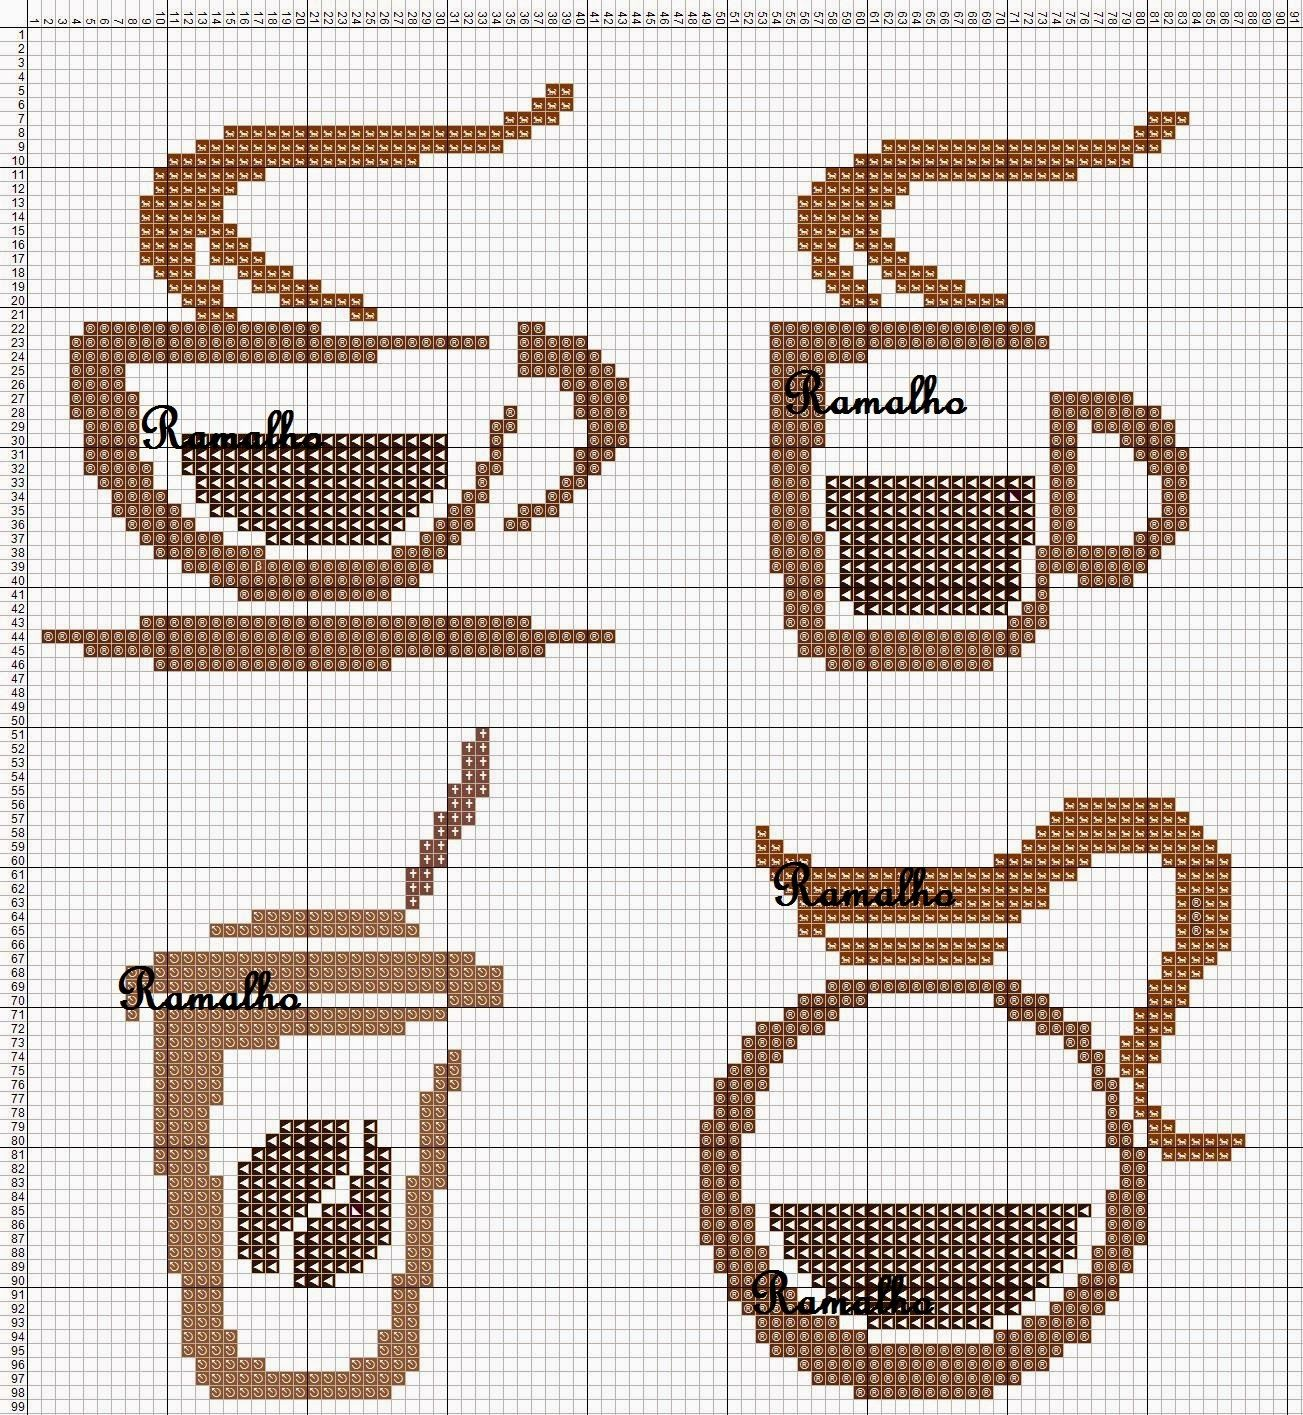 Coffee set perler bead pattern--could convert to cross stitch ...